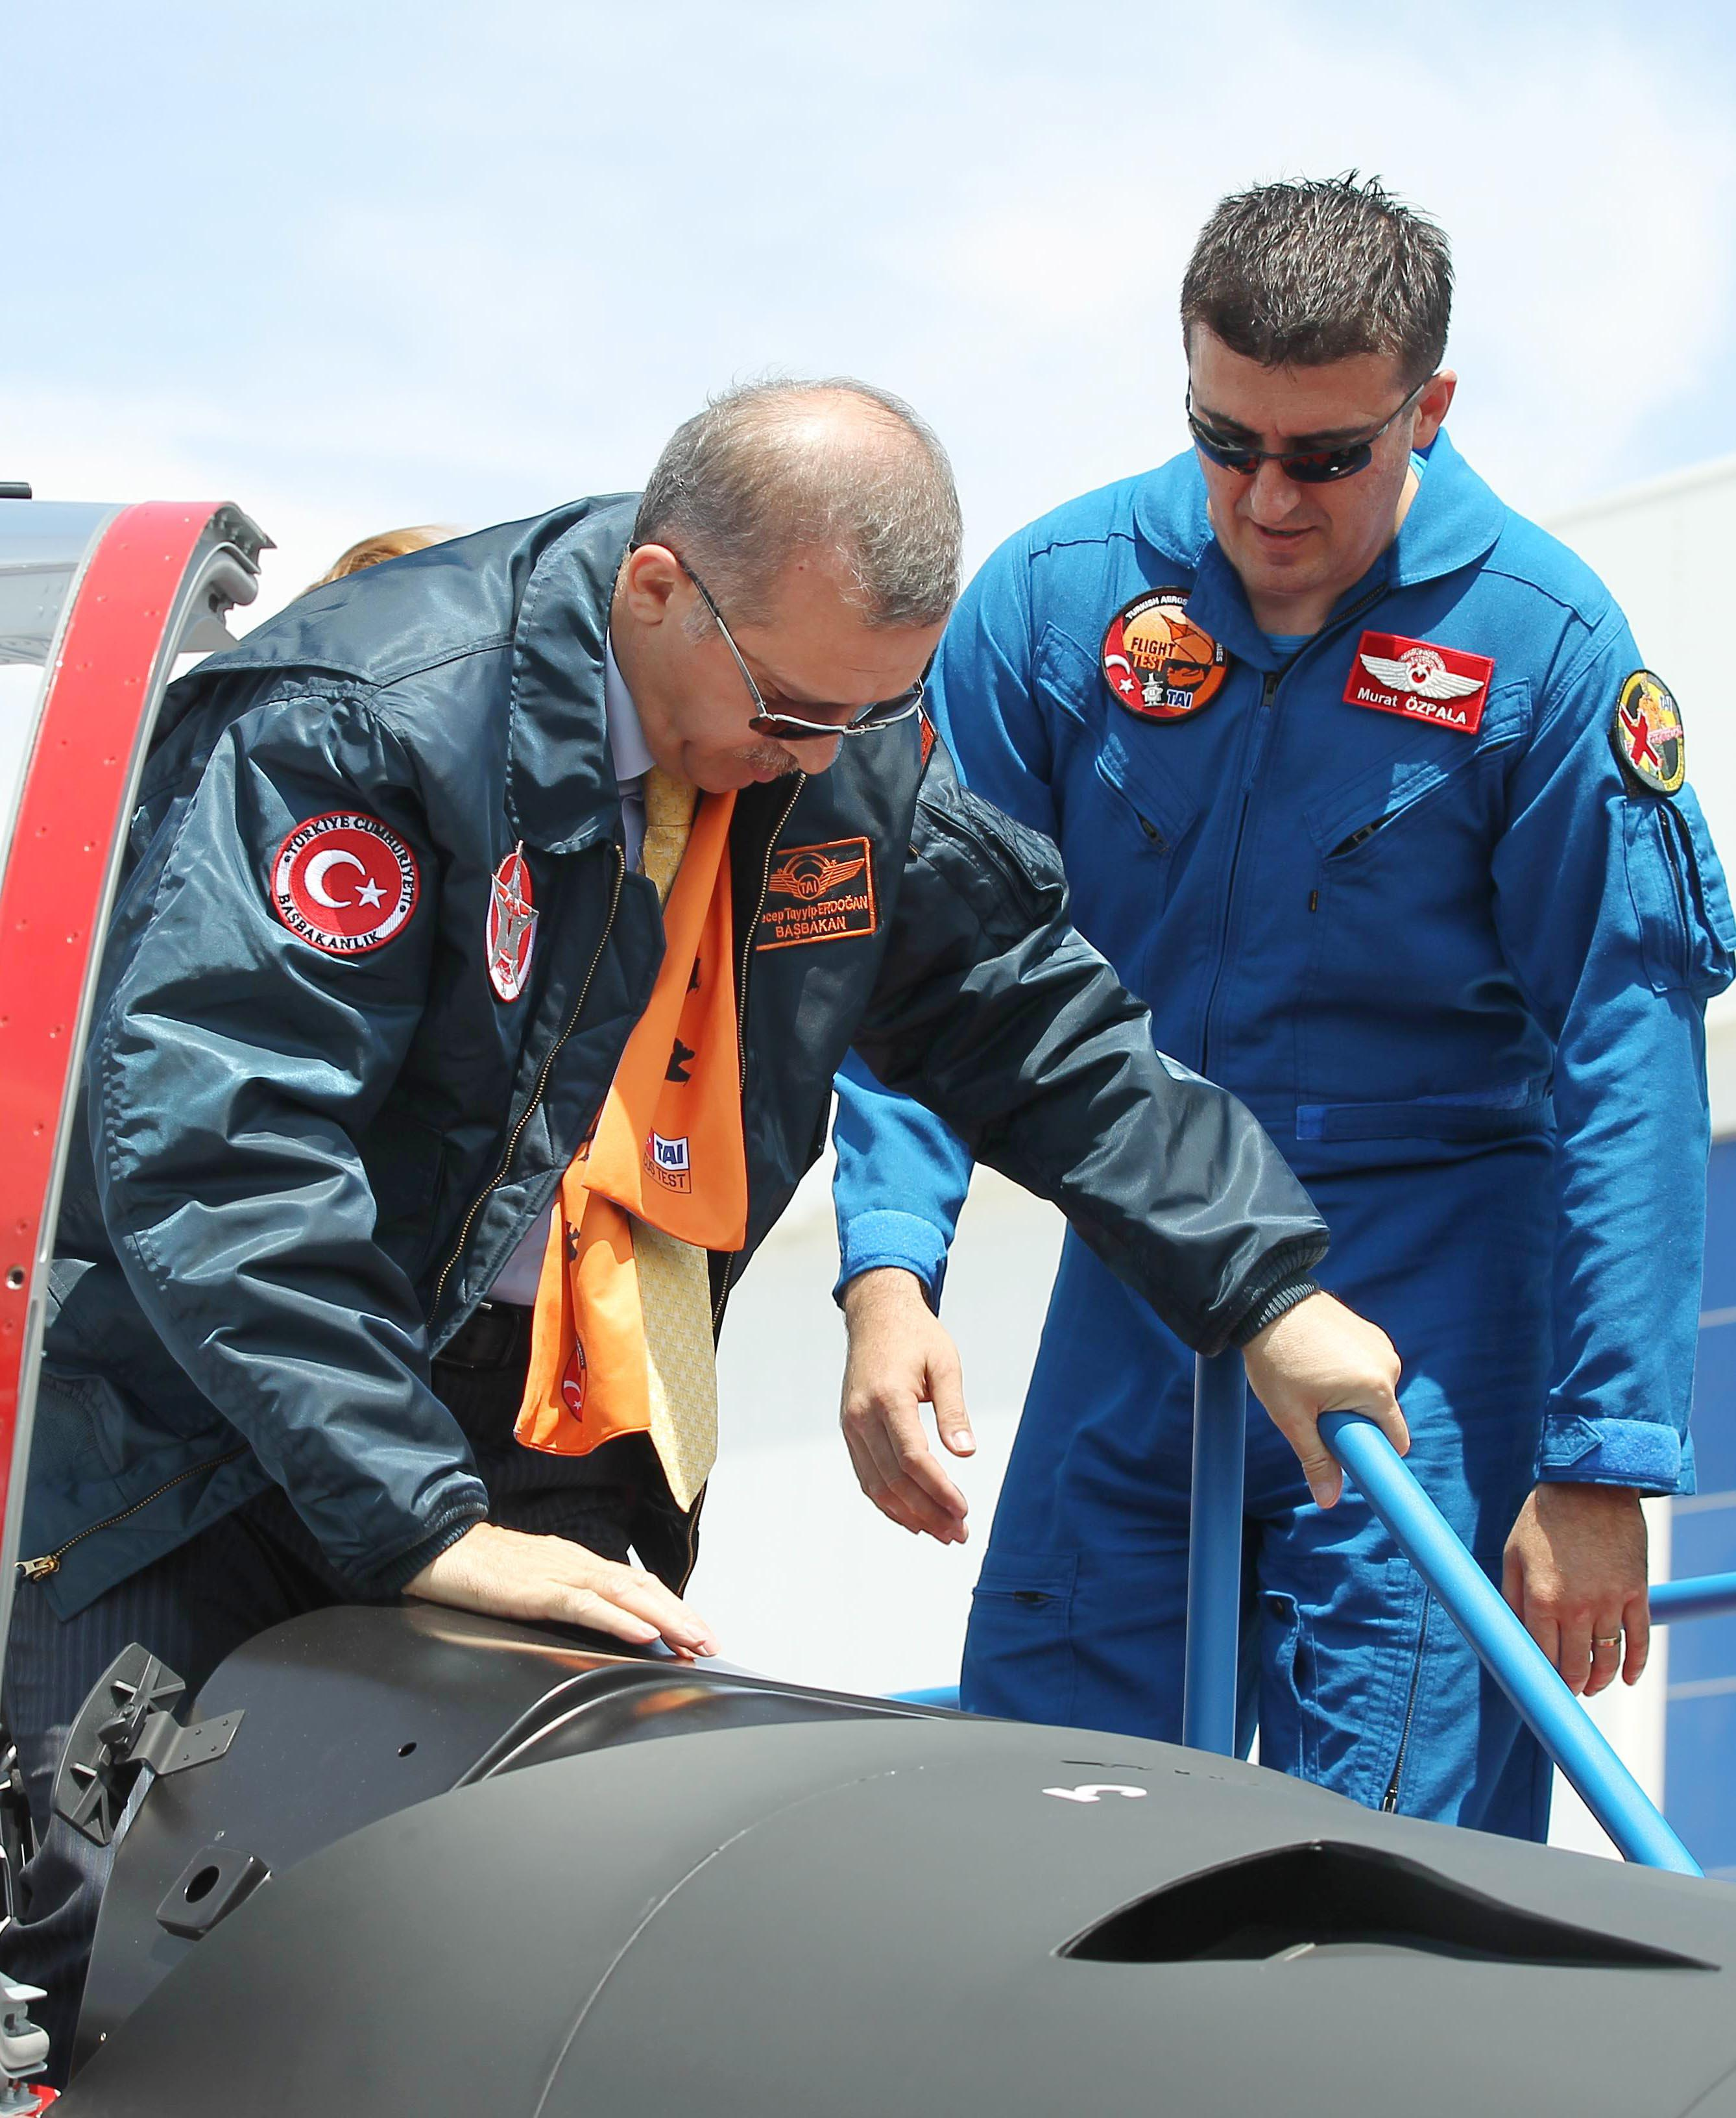 "Turkish Prime Minister Recep Tayyip Erdogan, left, gets into cockpit of a Hurkus (Freebird), Turkey's first locally produced military training plane, a two-seat turboprop plane, unveiled during a ceremony outside Ankara, Turkey, Wednesday, June 27, 2012. Erdogan kept up his pressure on Syria on Wednesday, saying ""we would never hesitate to respond with all our power to hostile acts, attacks and threats against us."" AP Photo)"